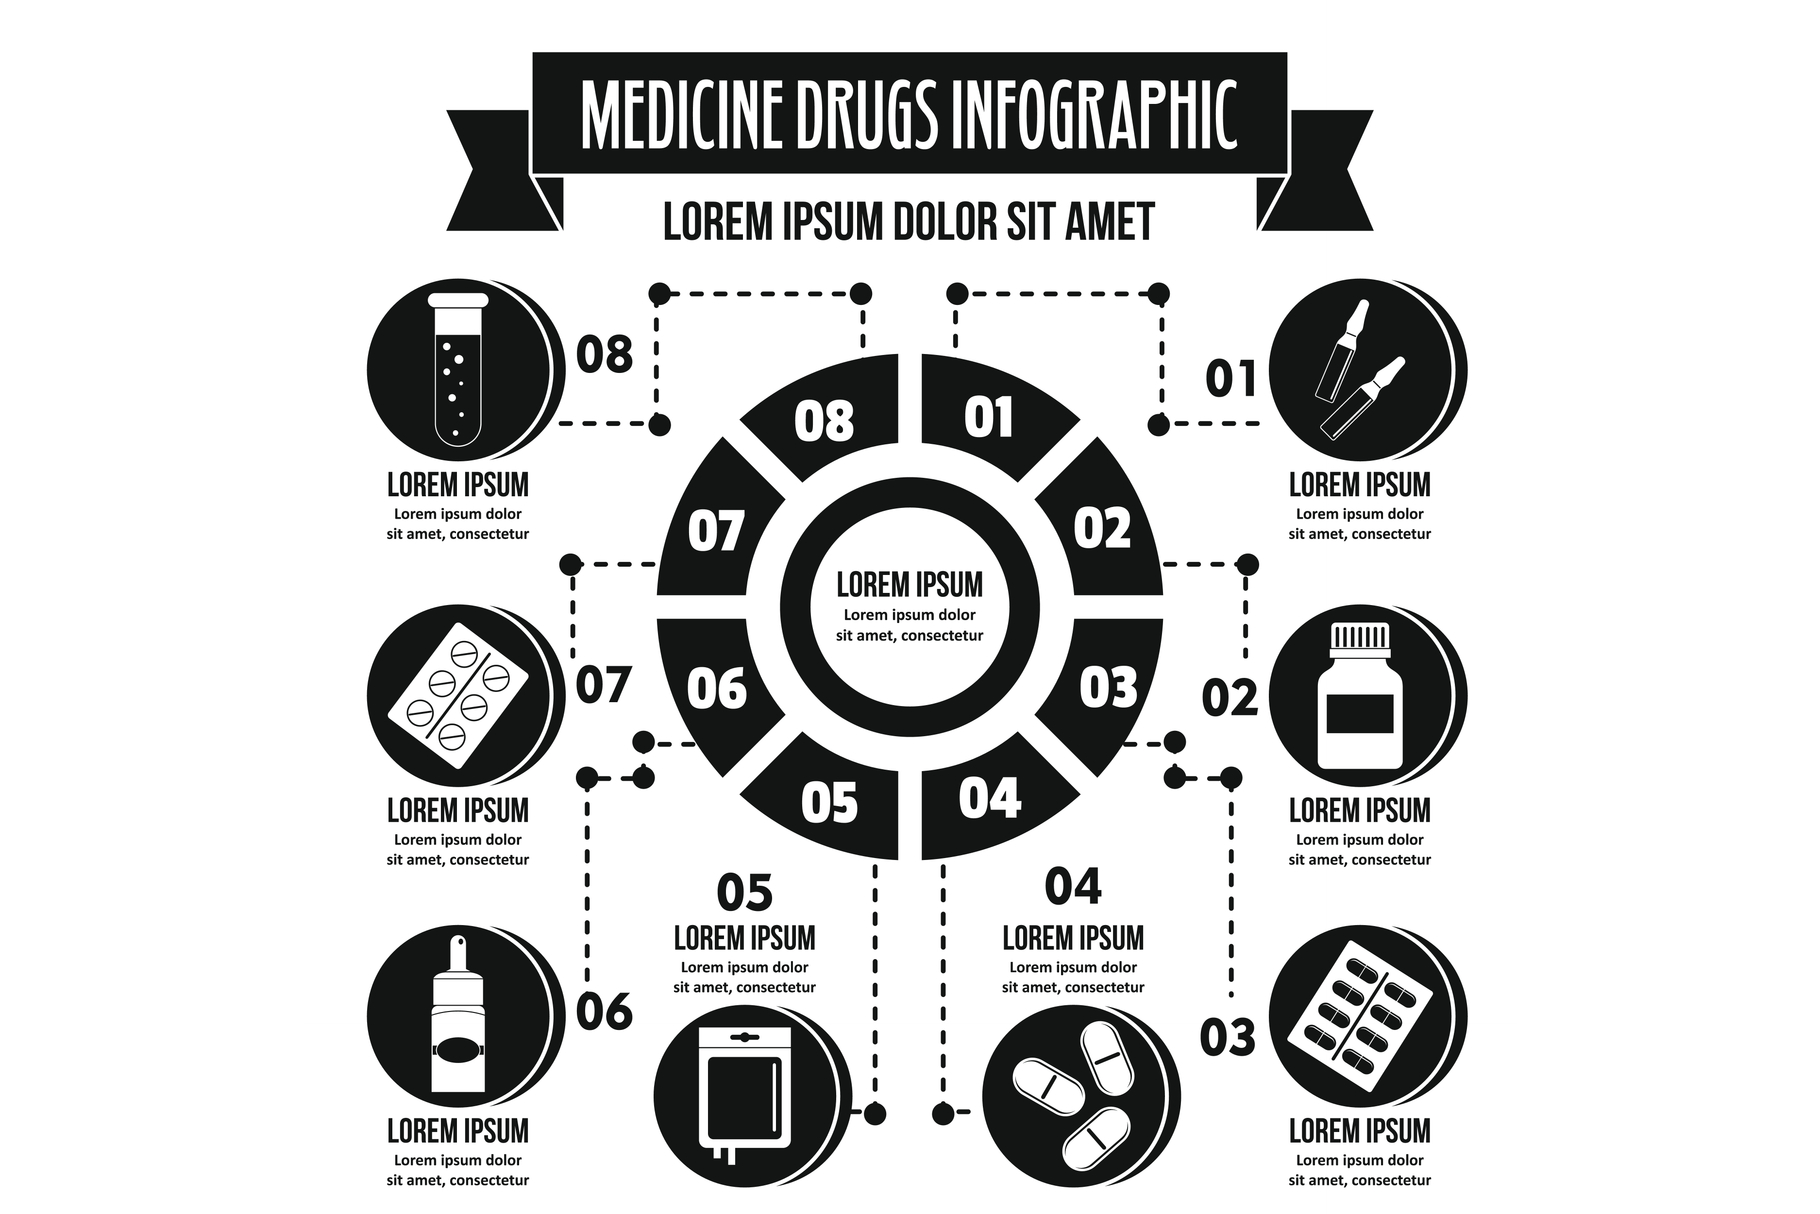 Medicine drugs infographic concept, simple style example image 1